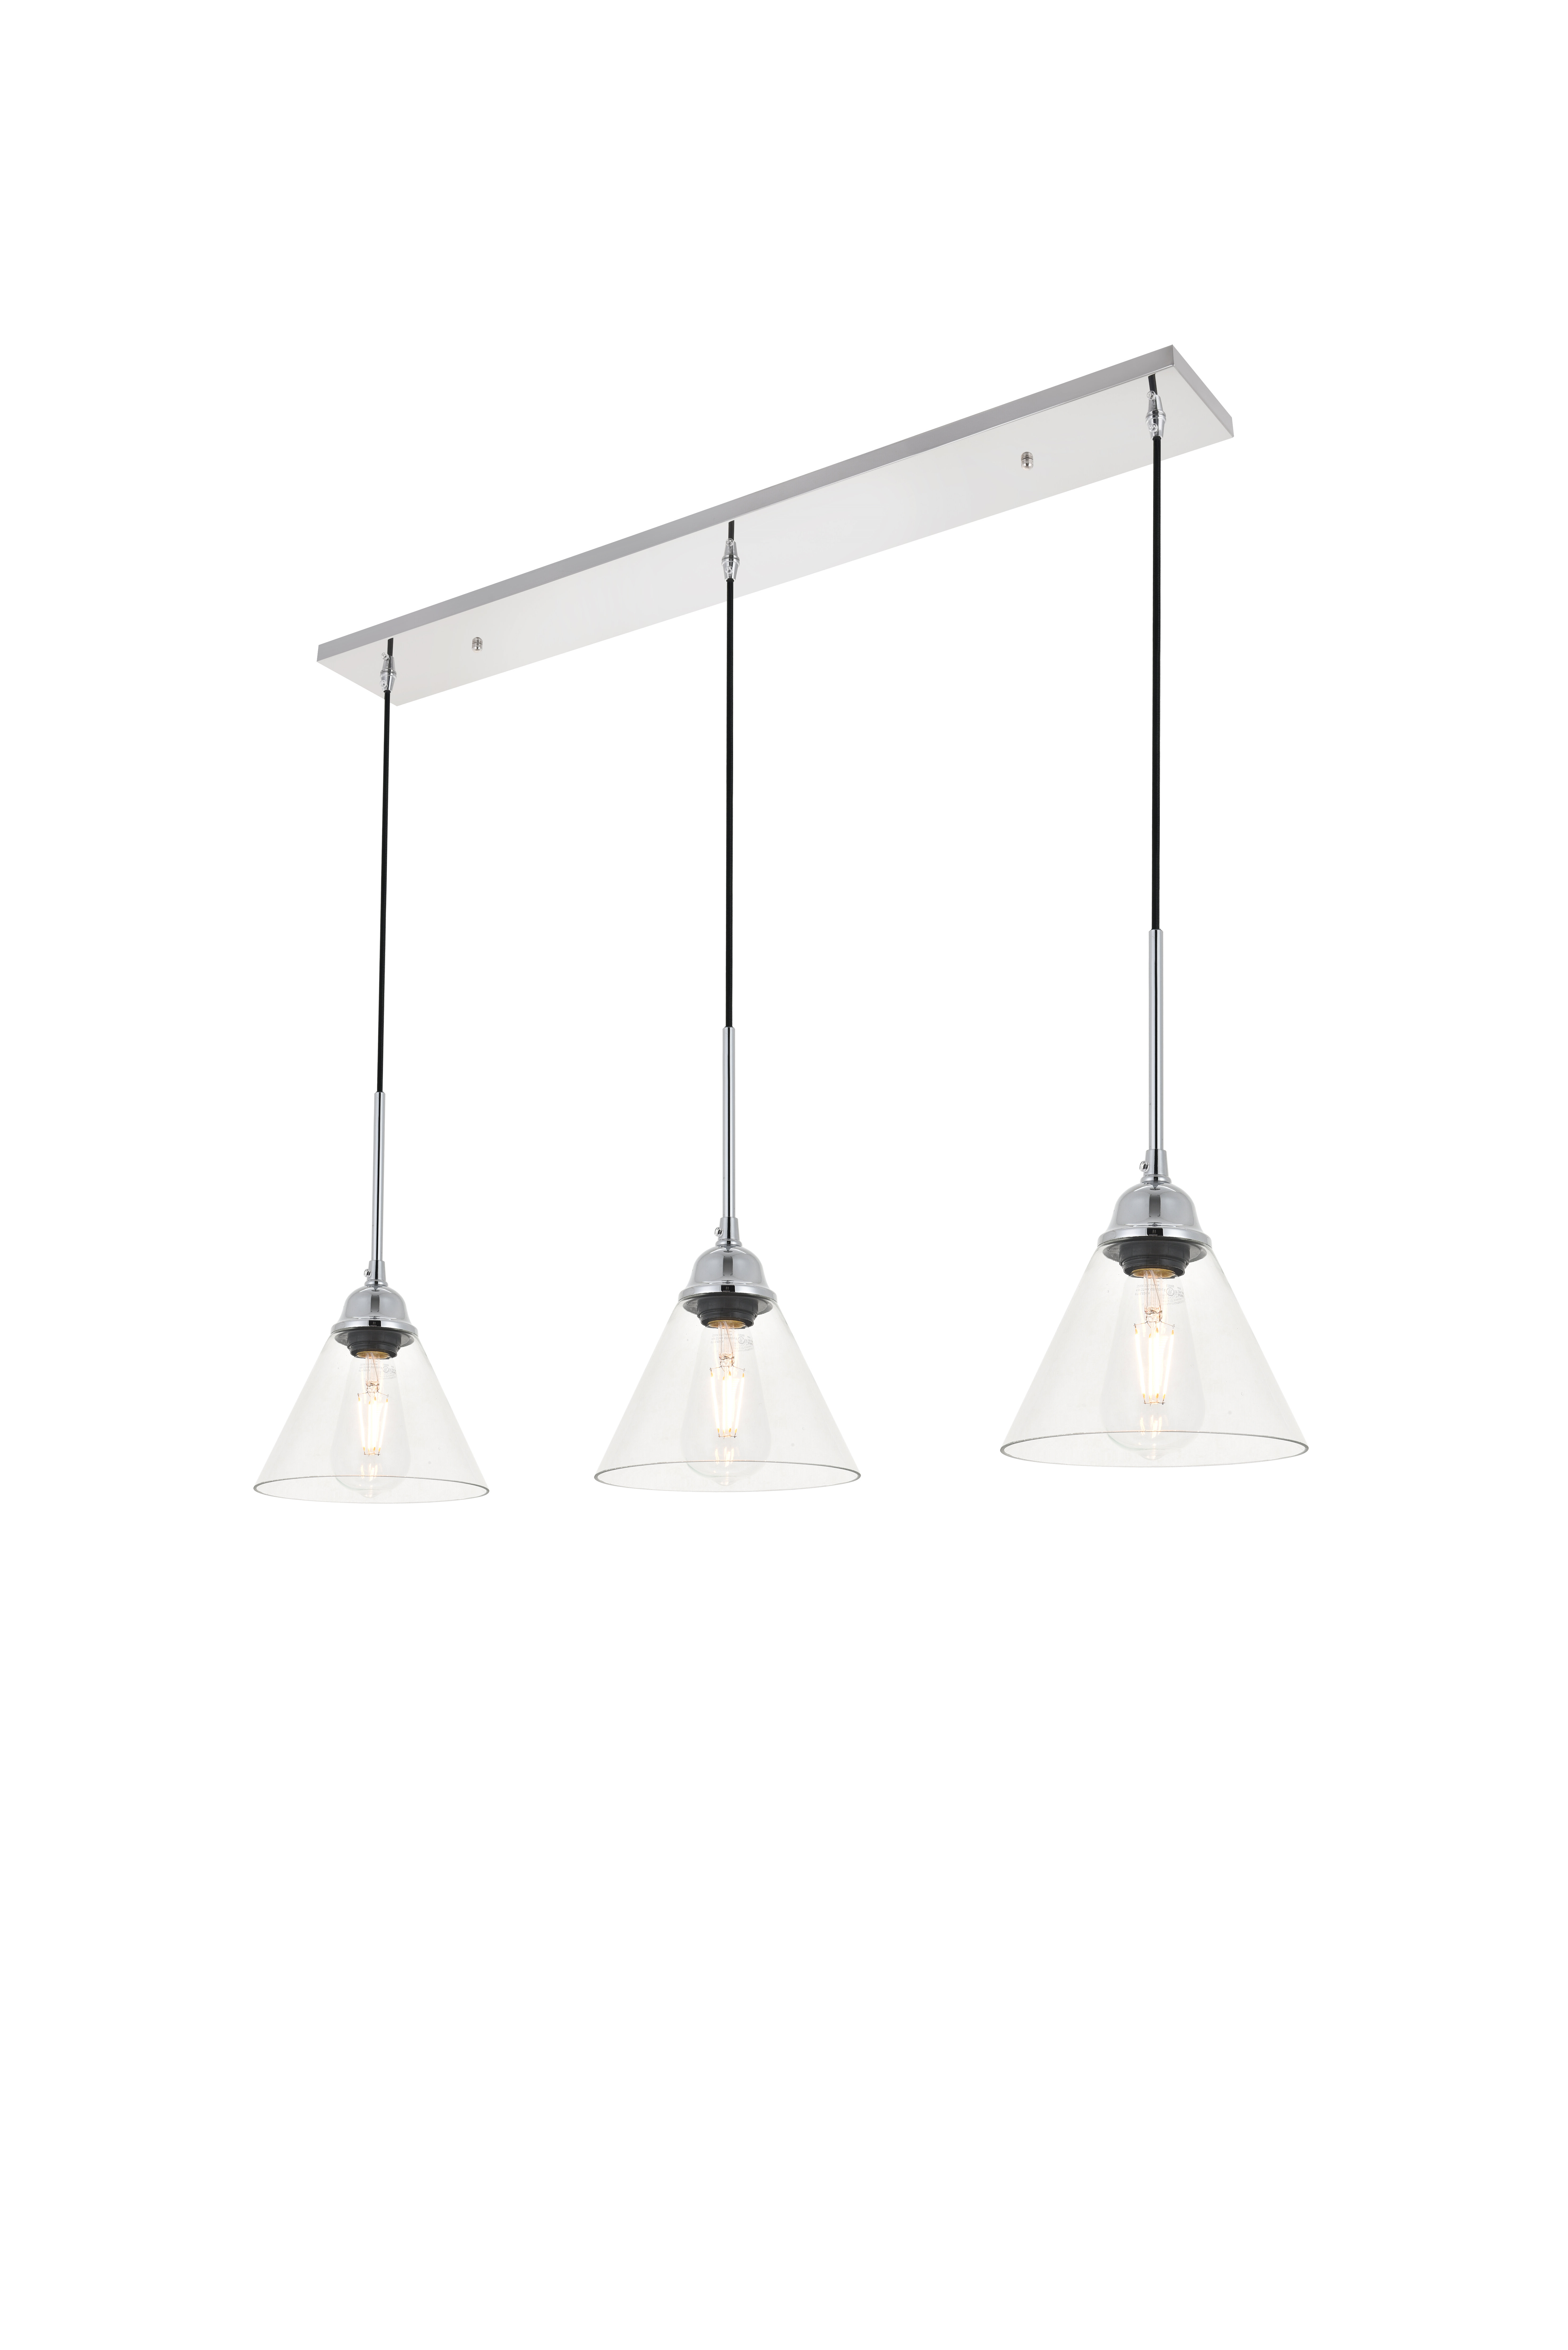 Rockland 4 Light Geometric Pendants For Best And Newest Hallsville 3 Light Kitchen Island Pendant (View 18 of 20)